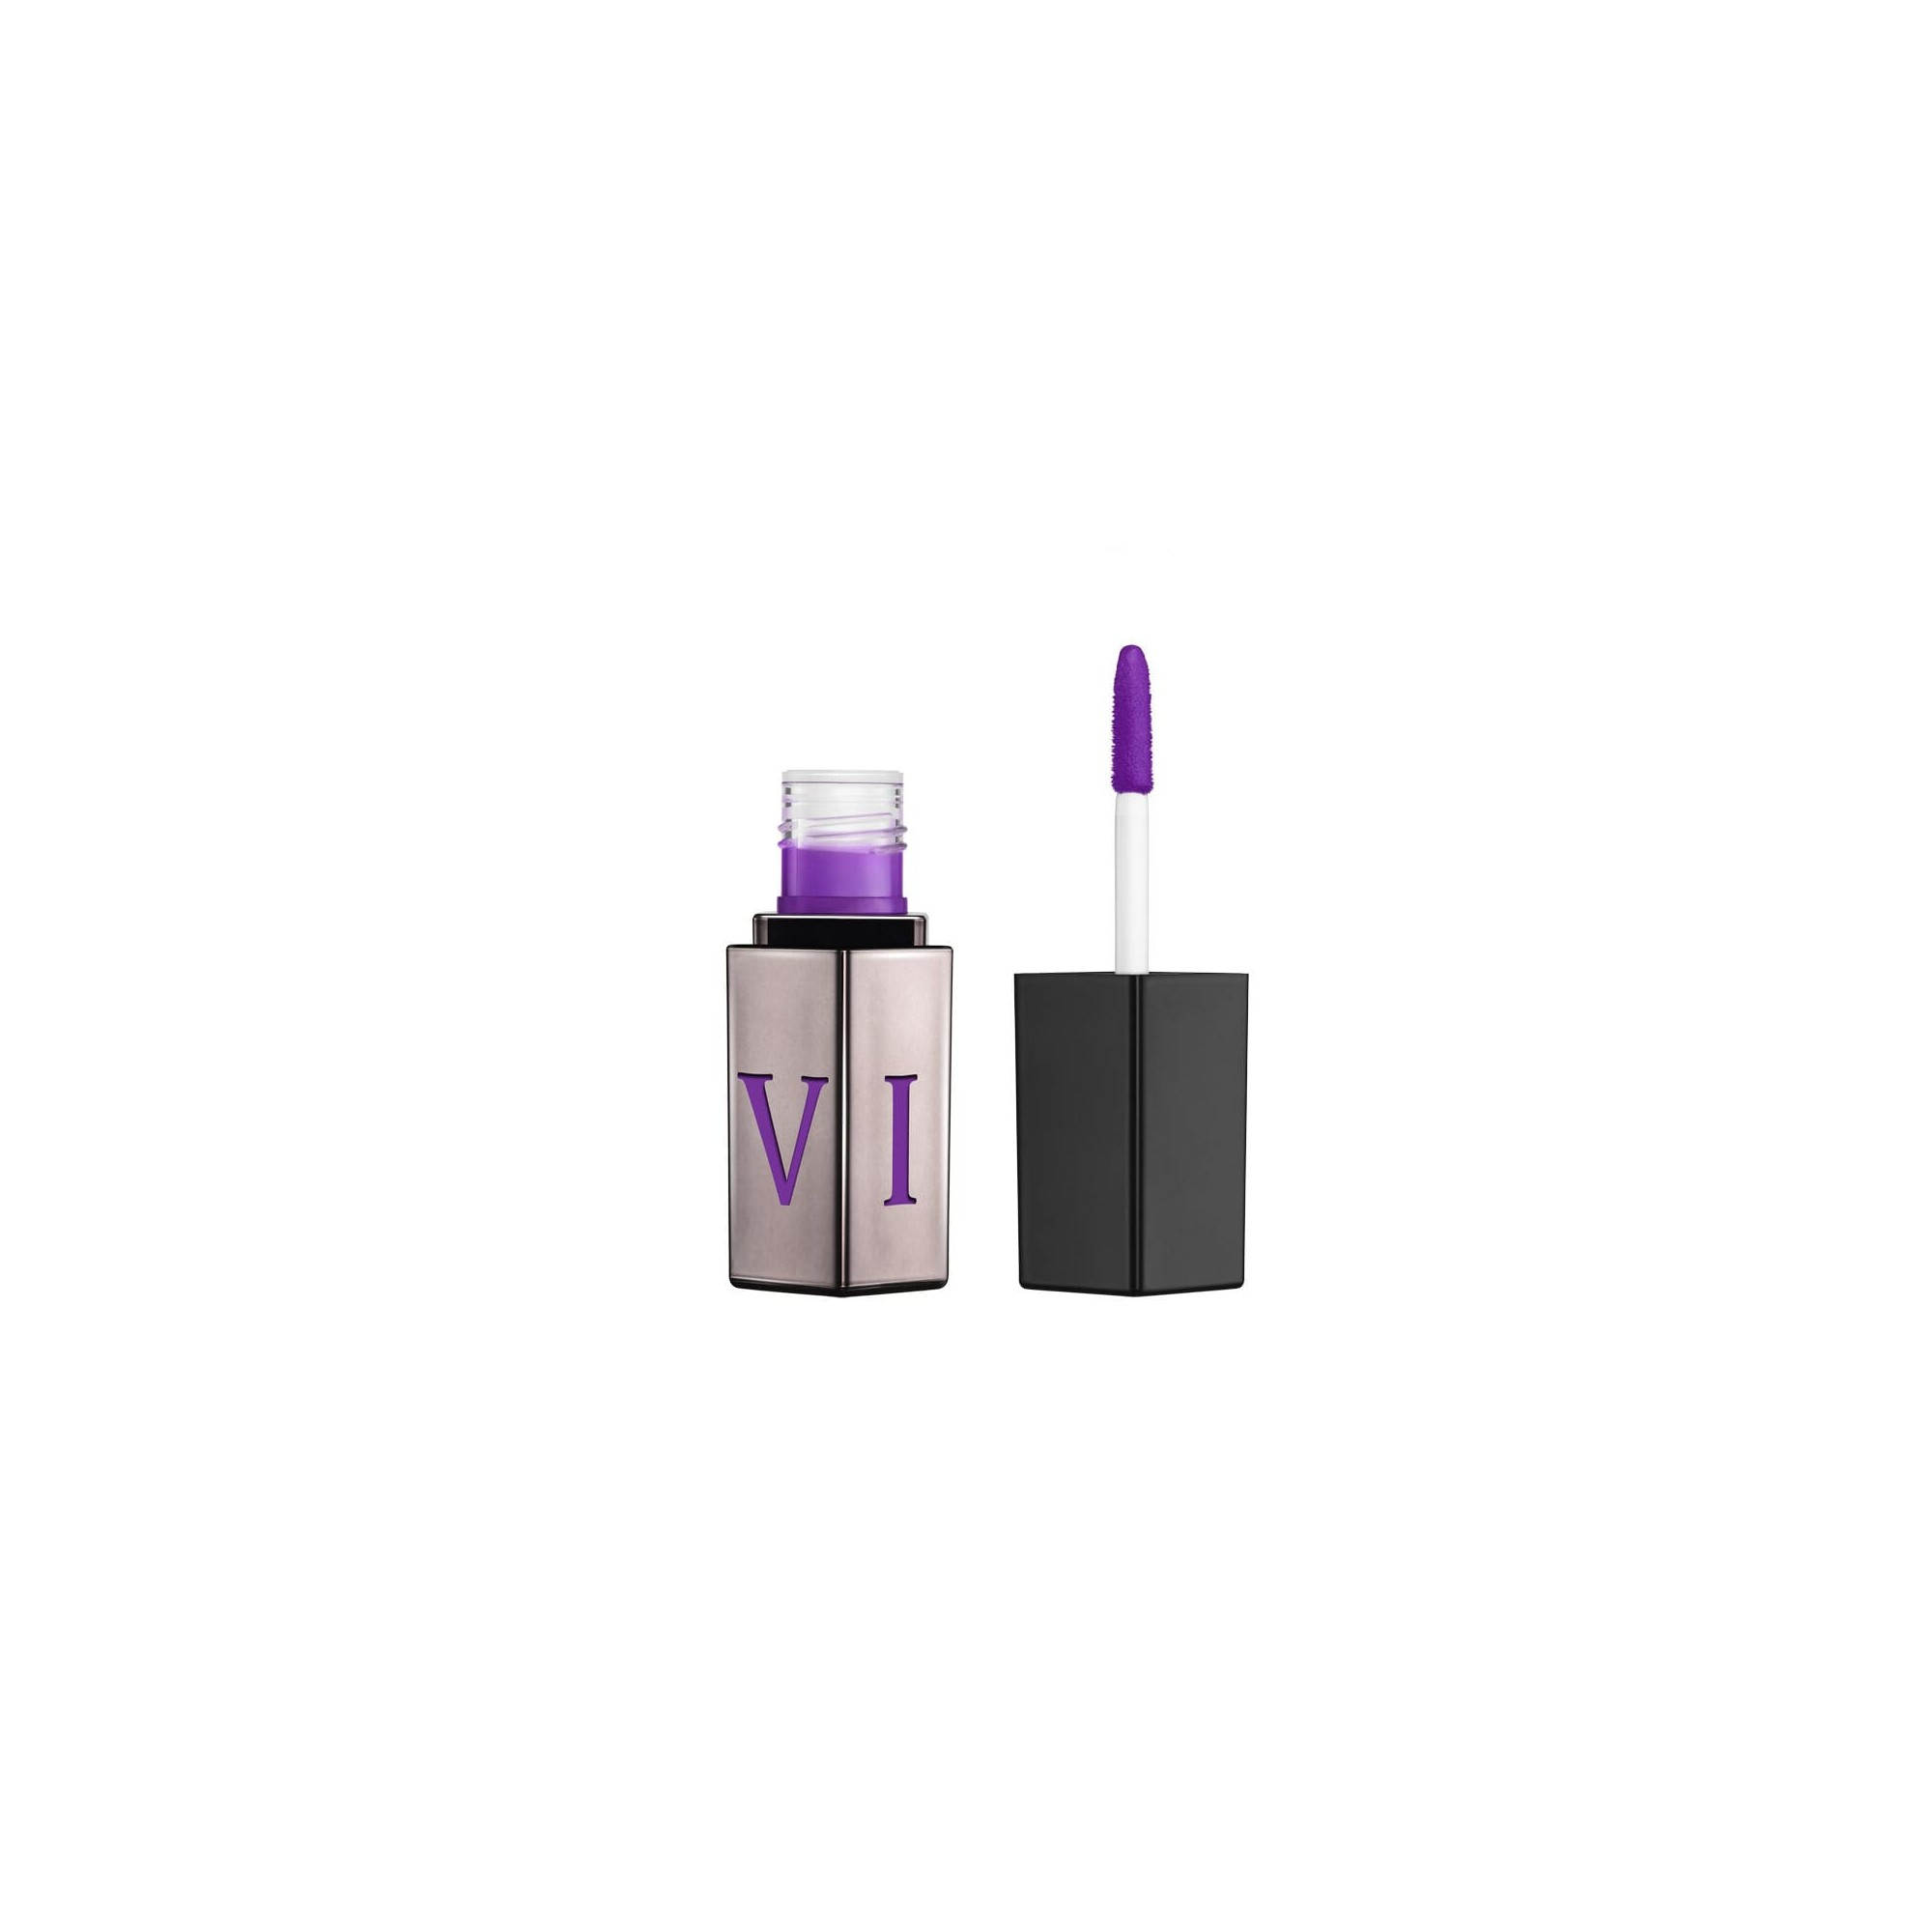 Urban Decay Wired Vice Lip Chemistry Lasting Glassy Tint Gravity